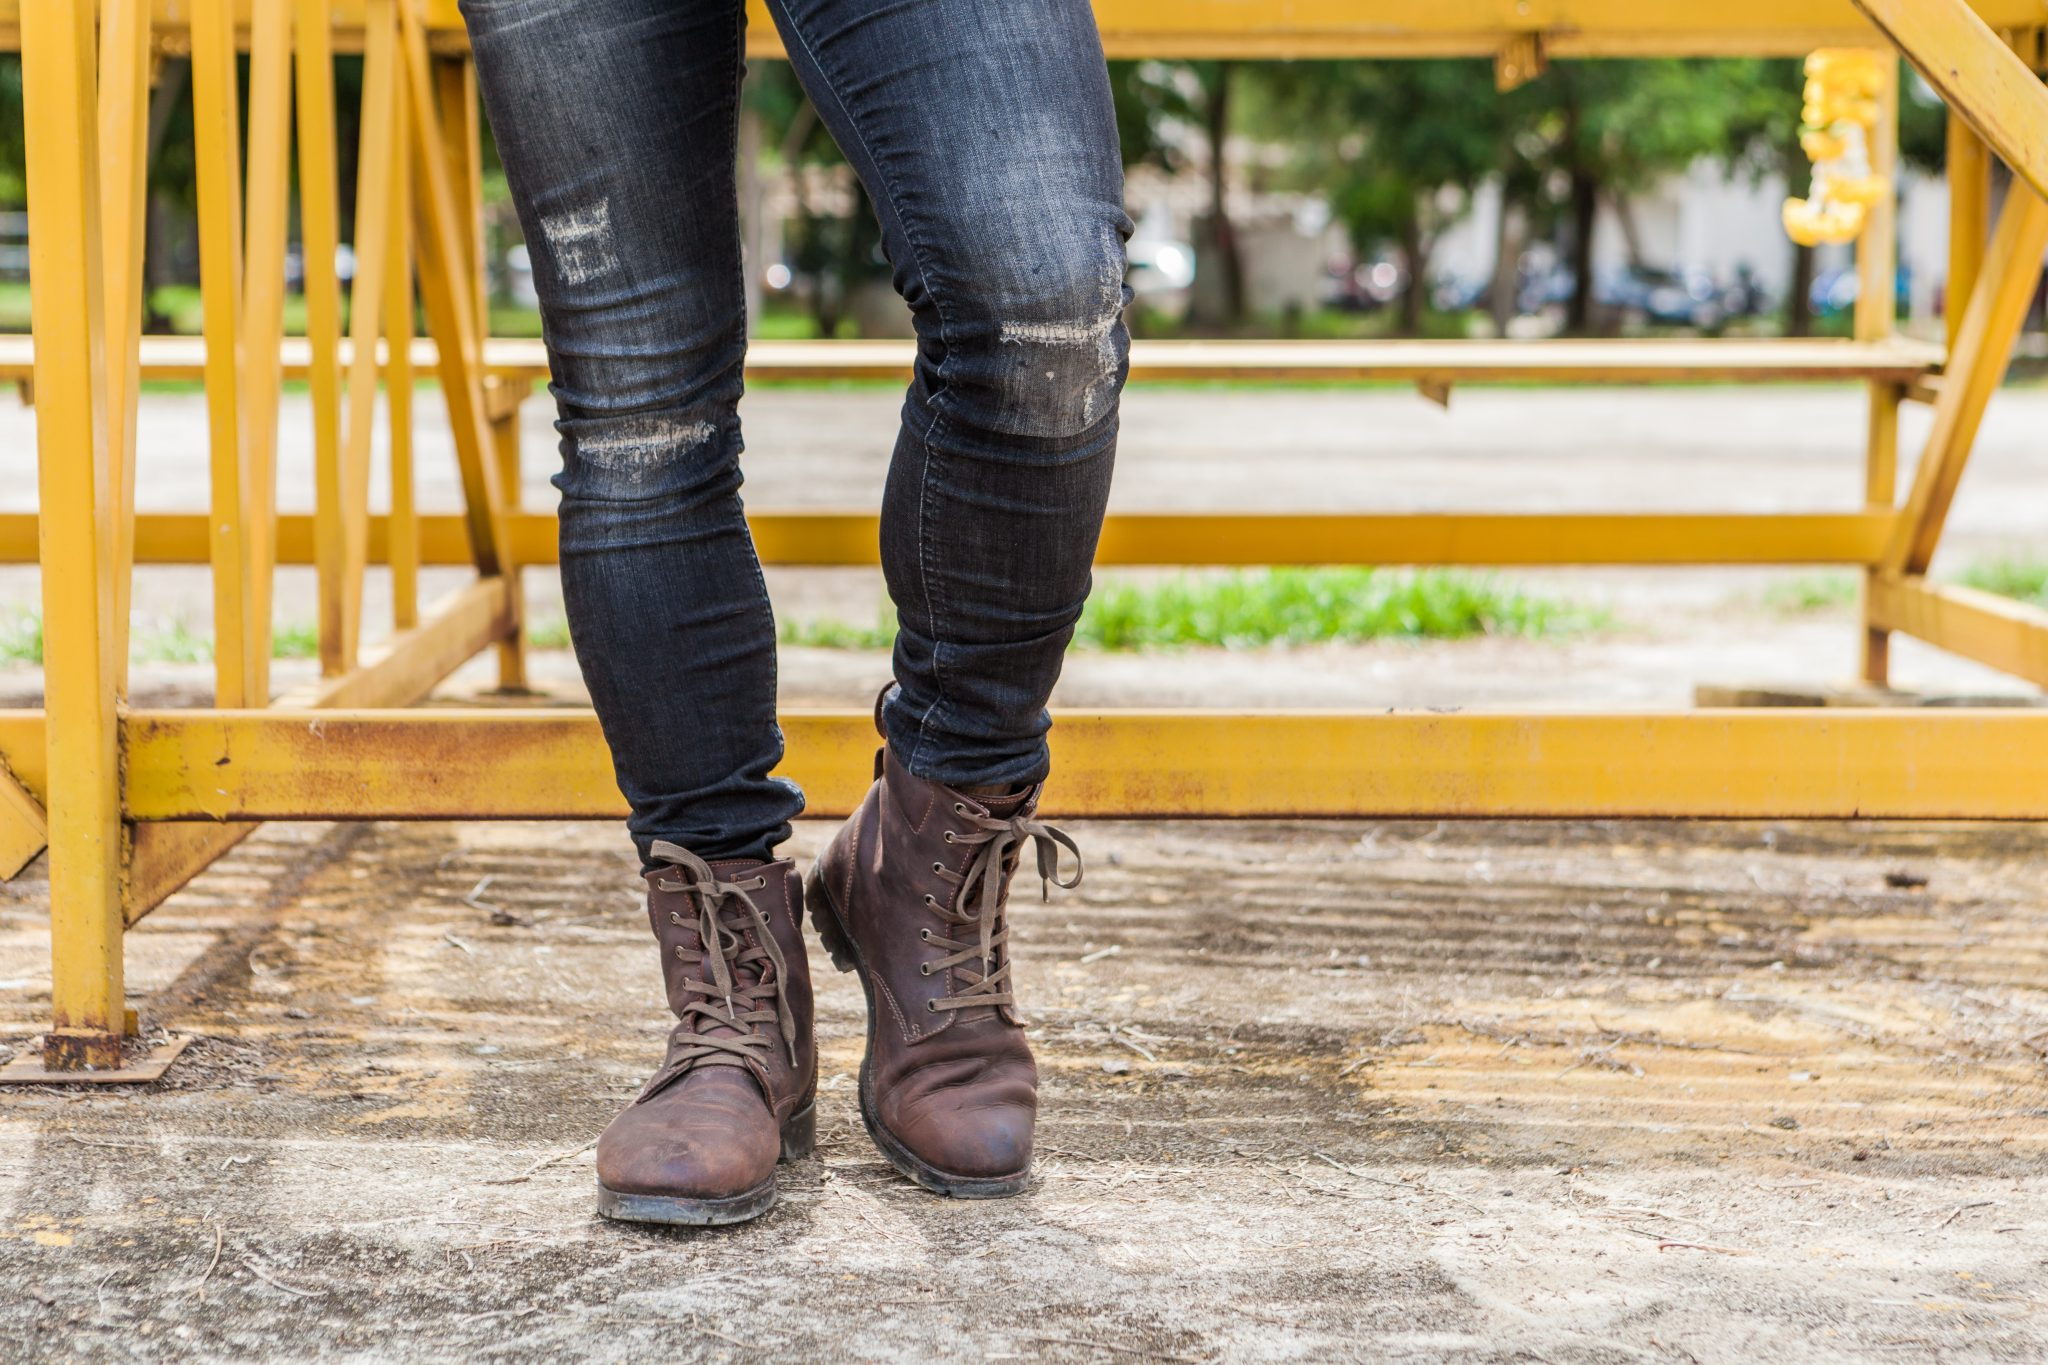 Someone standing with distressed skinny jeans and work boots in front of a yellow gate